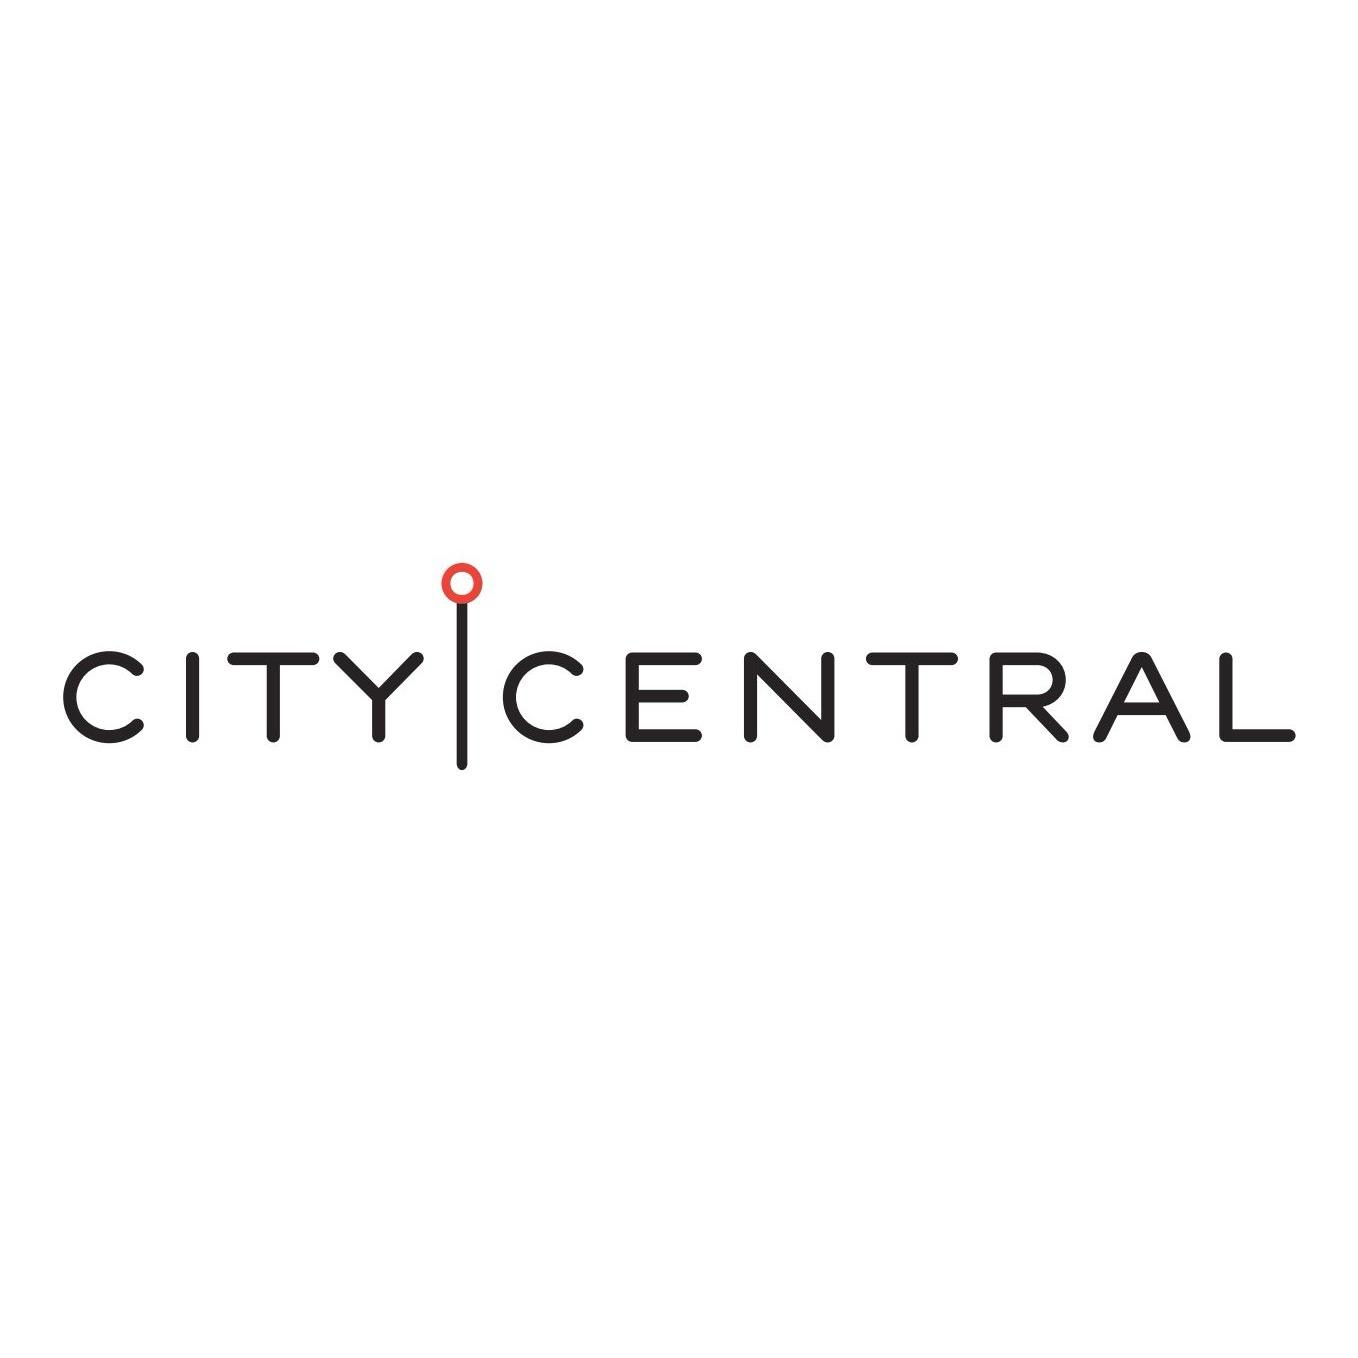 CityCentral